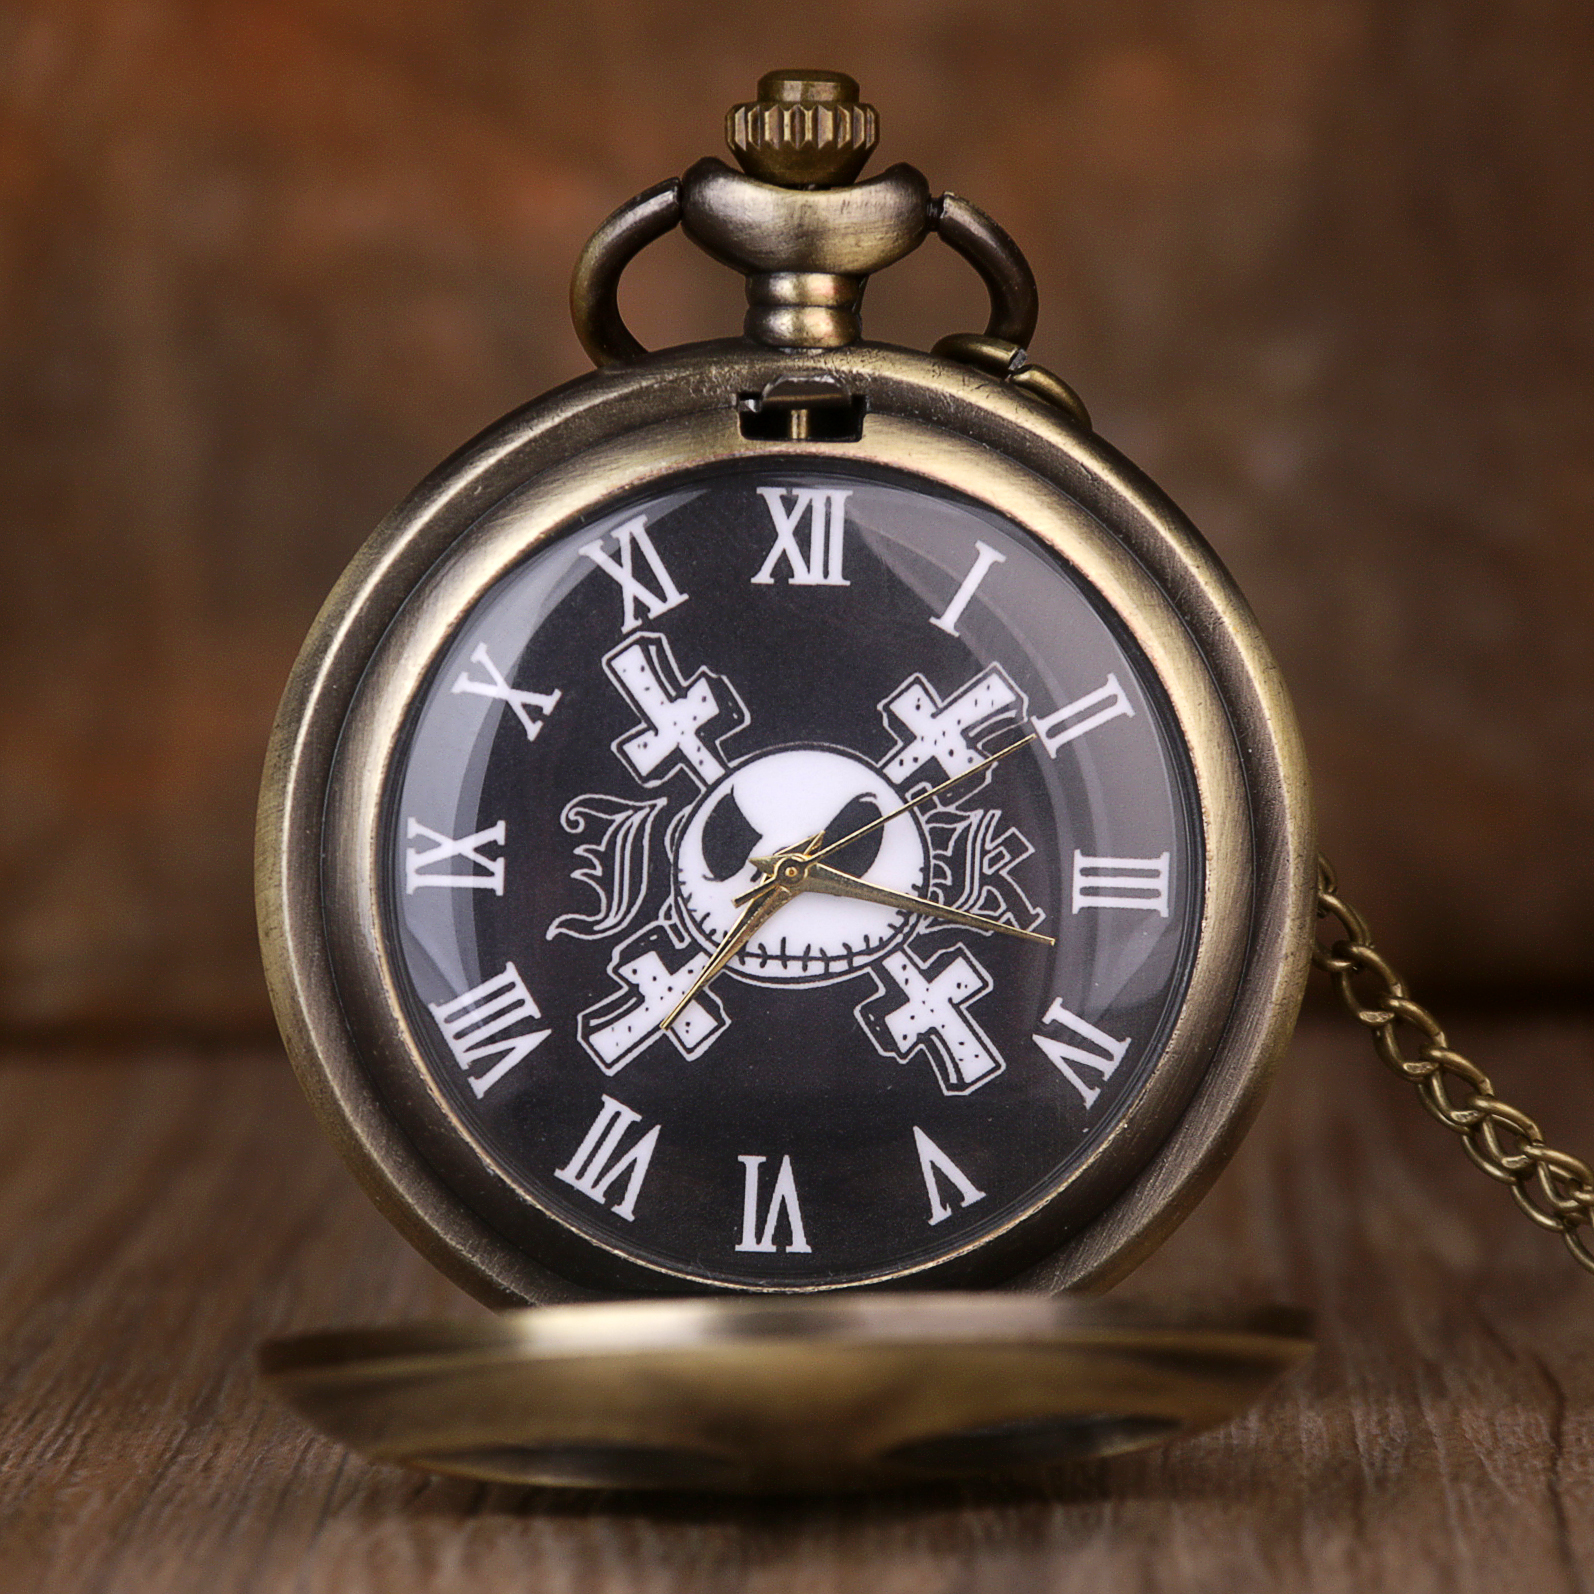 Movie Theme Pocket Watch For Men The Nightmare Before Quartz Pocket Watches  Mens With Chain Mens Fob Watch: Buy Online at Best Prices in Pakistan |  Daraz.pk